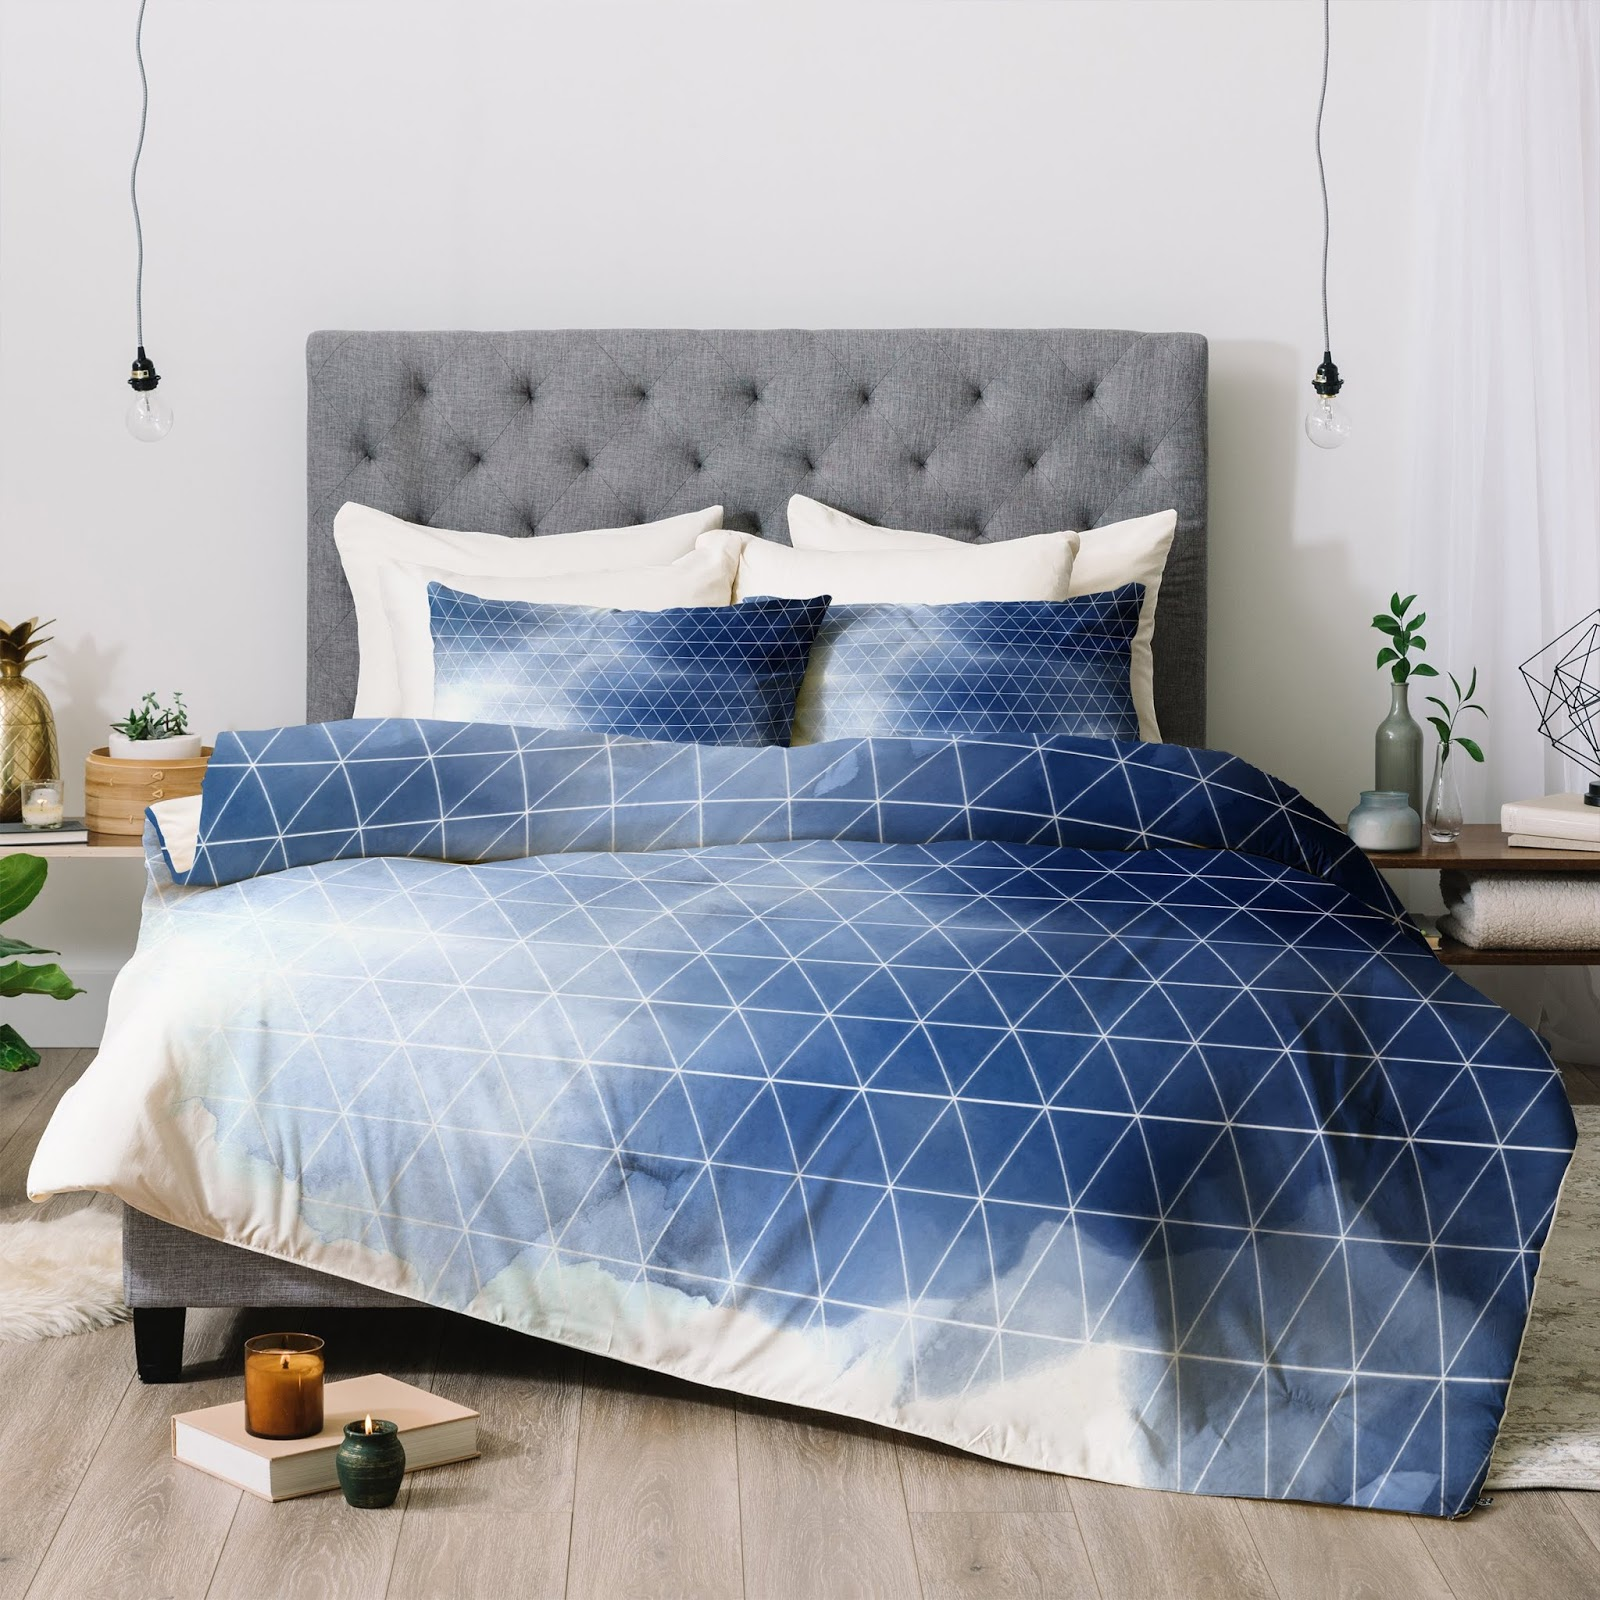 https://www.denydesigns.com/products/emanuela-carratoni-blue-thunderstorm-comforter